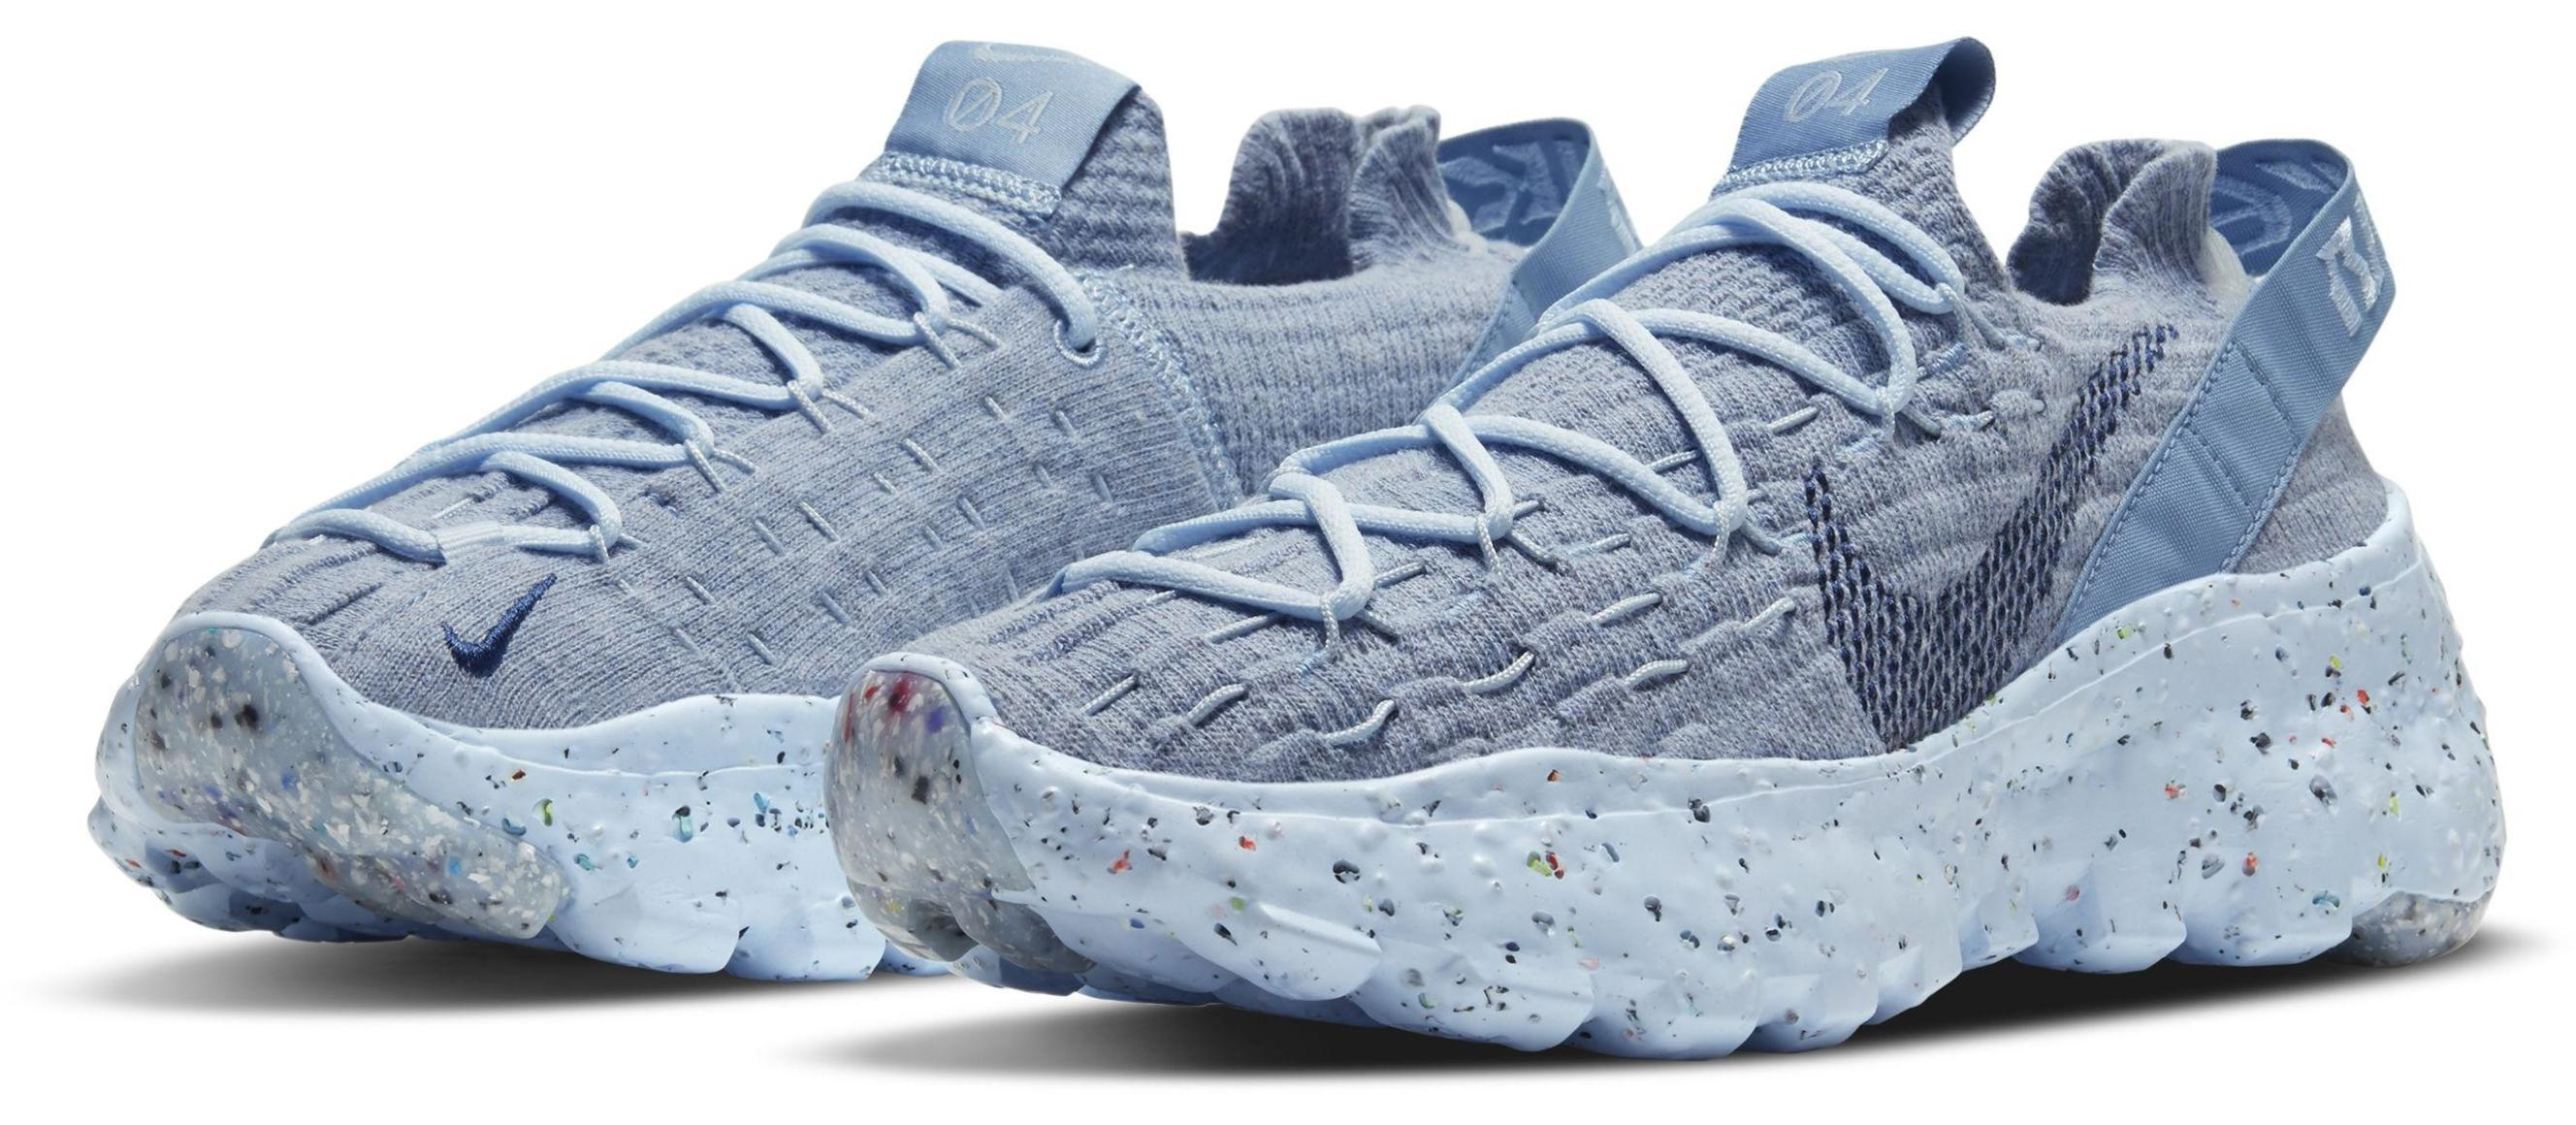 Nike Space Hippie 04 Chambray Blue/Chambray/Light Armoury Blue/Midnight Navy